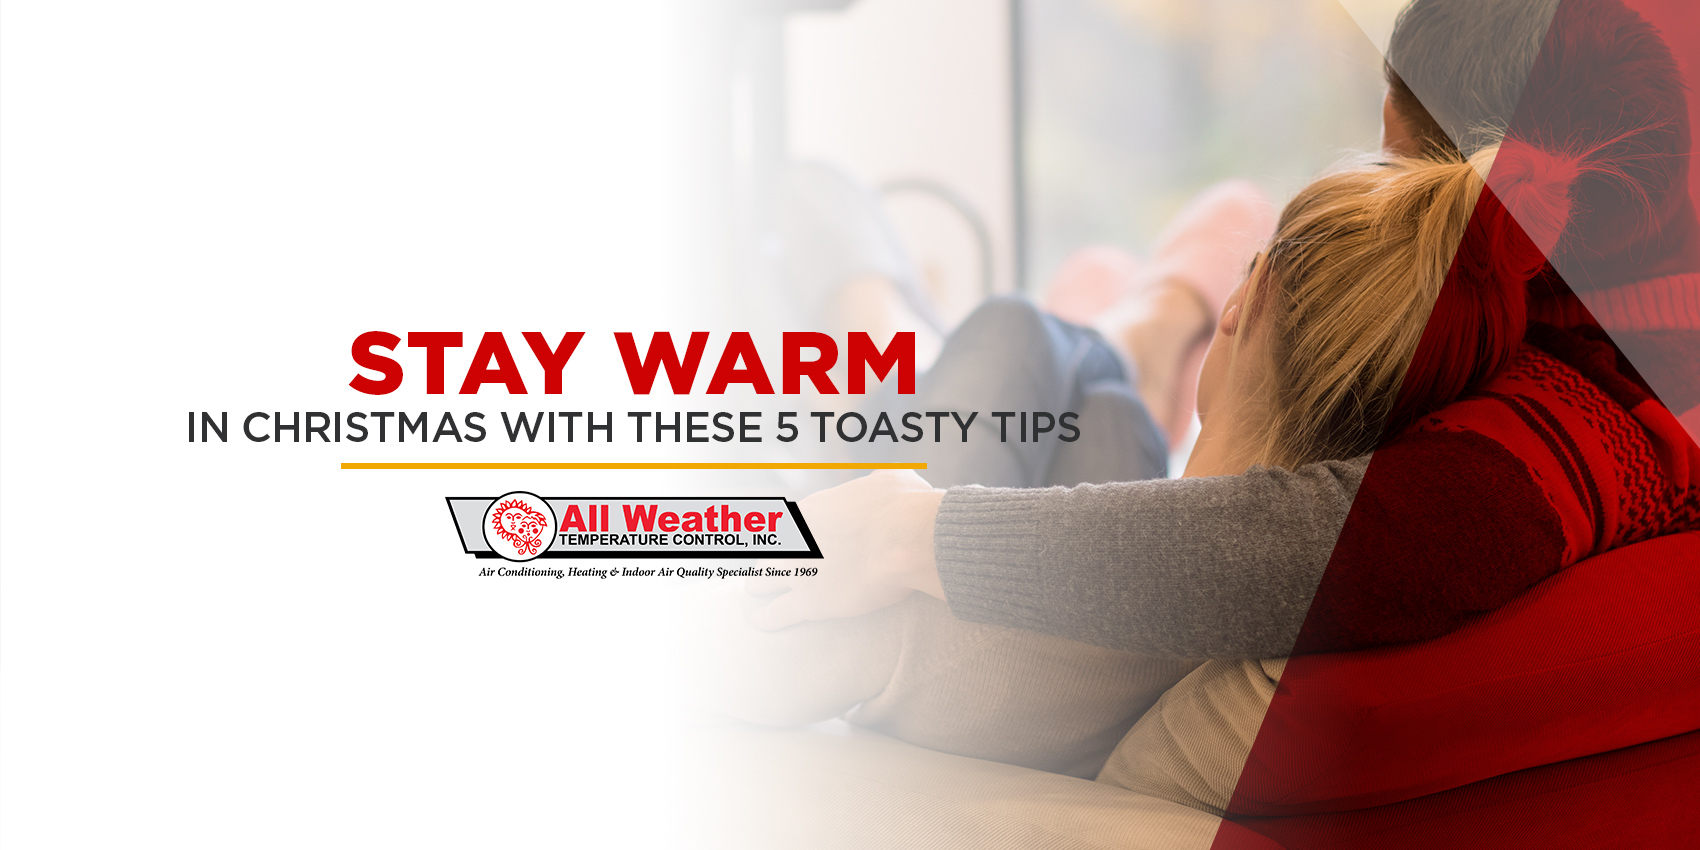 Stay Warm During Christmas with These 5 Toasty Tips